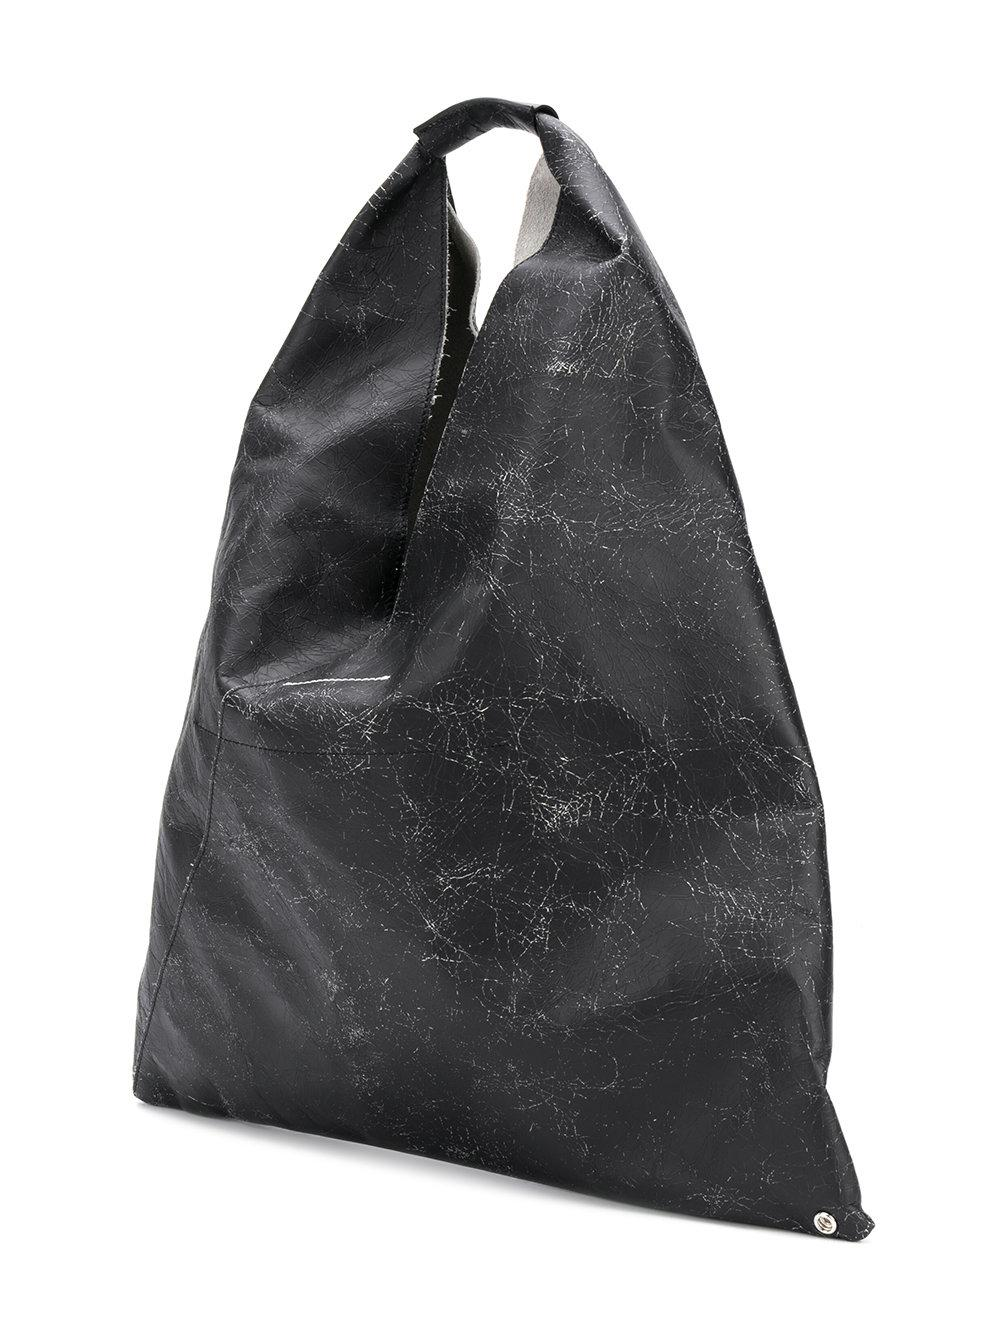 MM6 by Maison Martin Margiela Leather Oversized Tote in Black